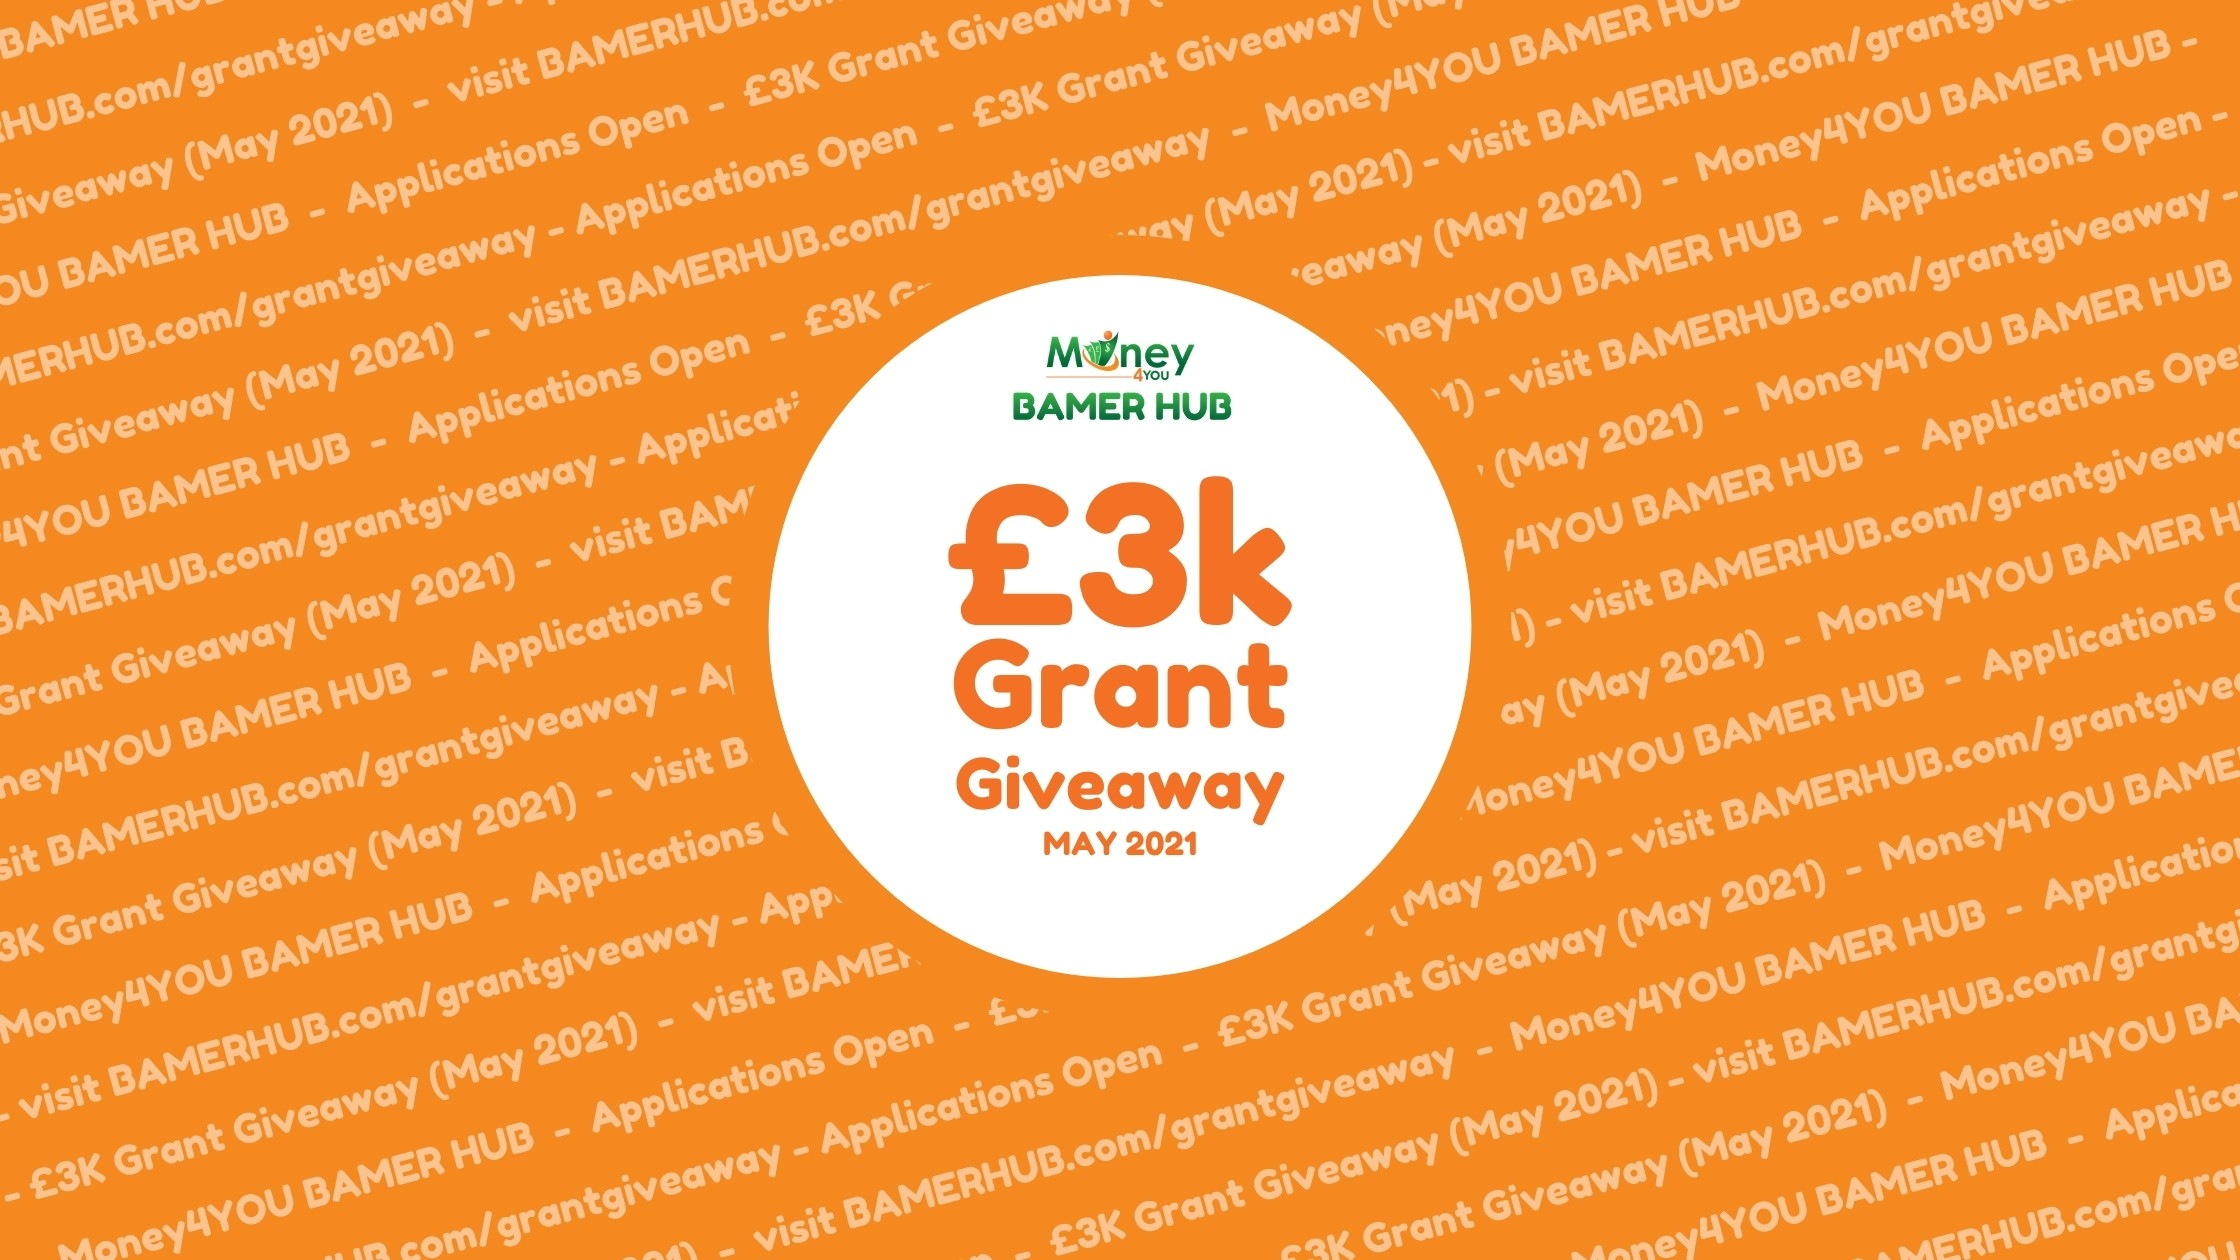 Applications Open for the £3K Grant Giveaway (May 2021)